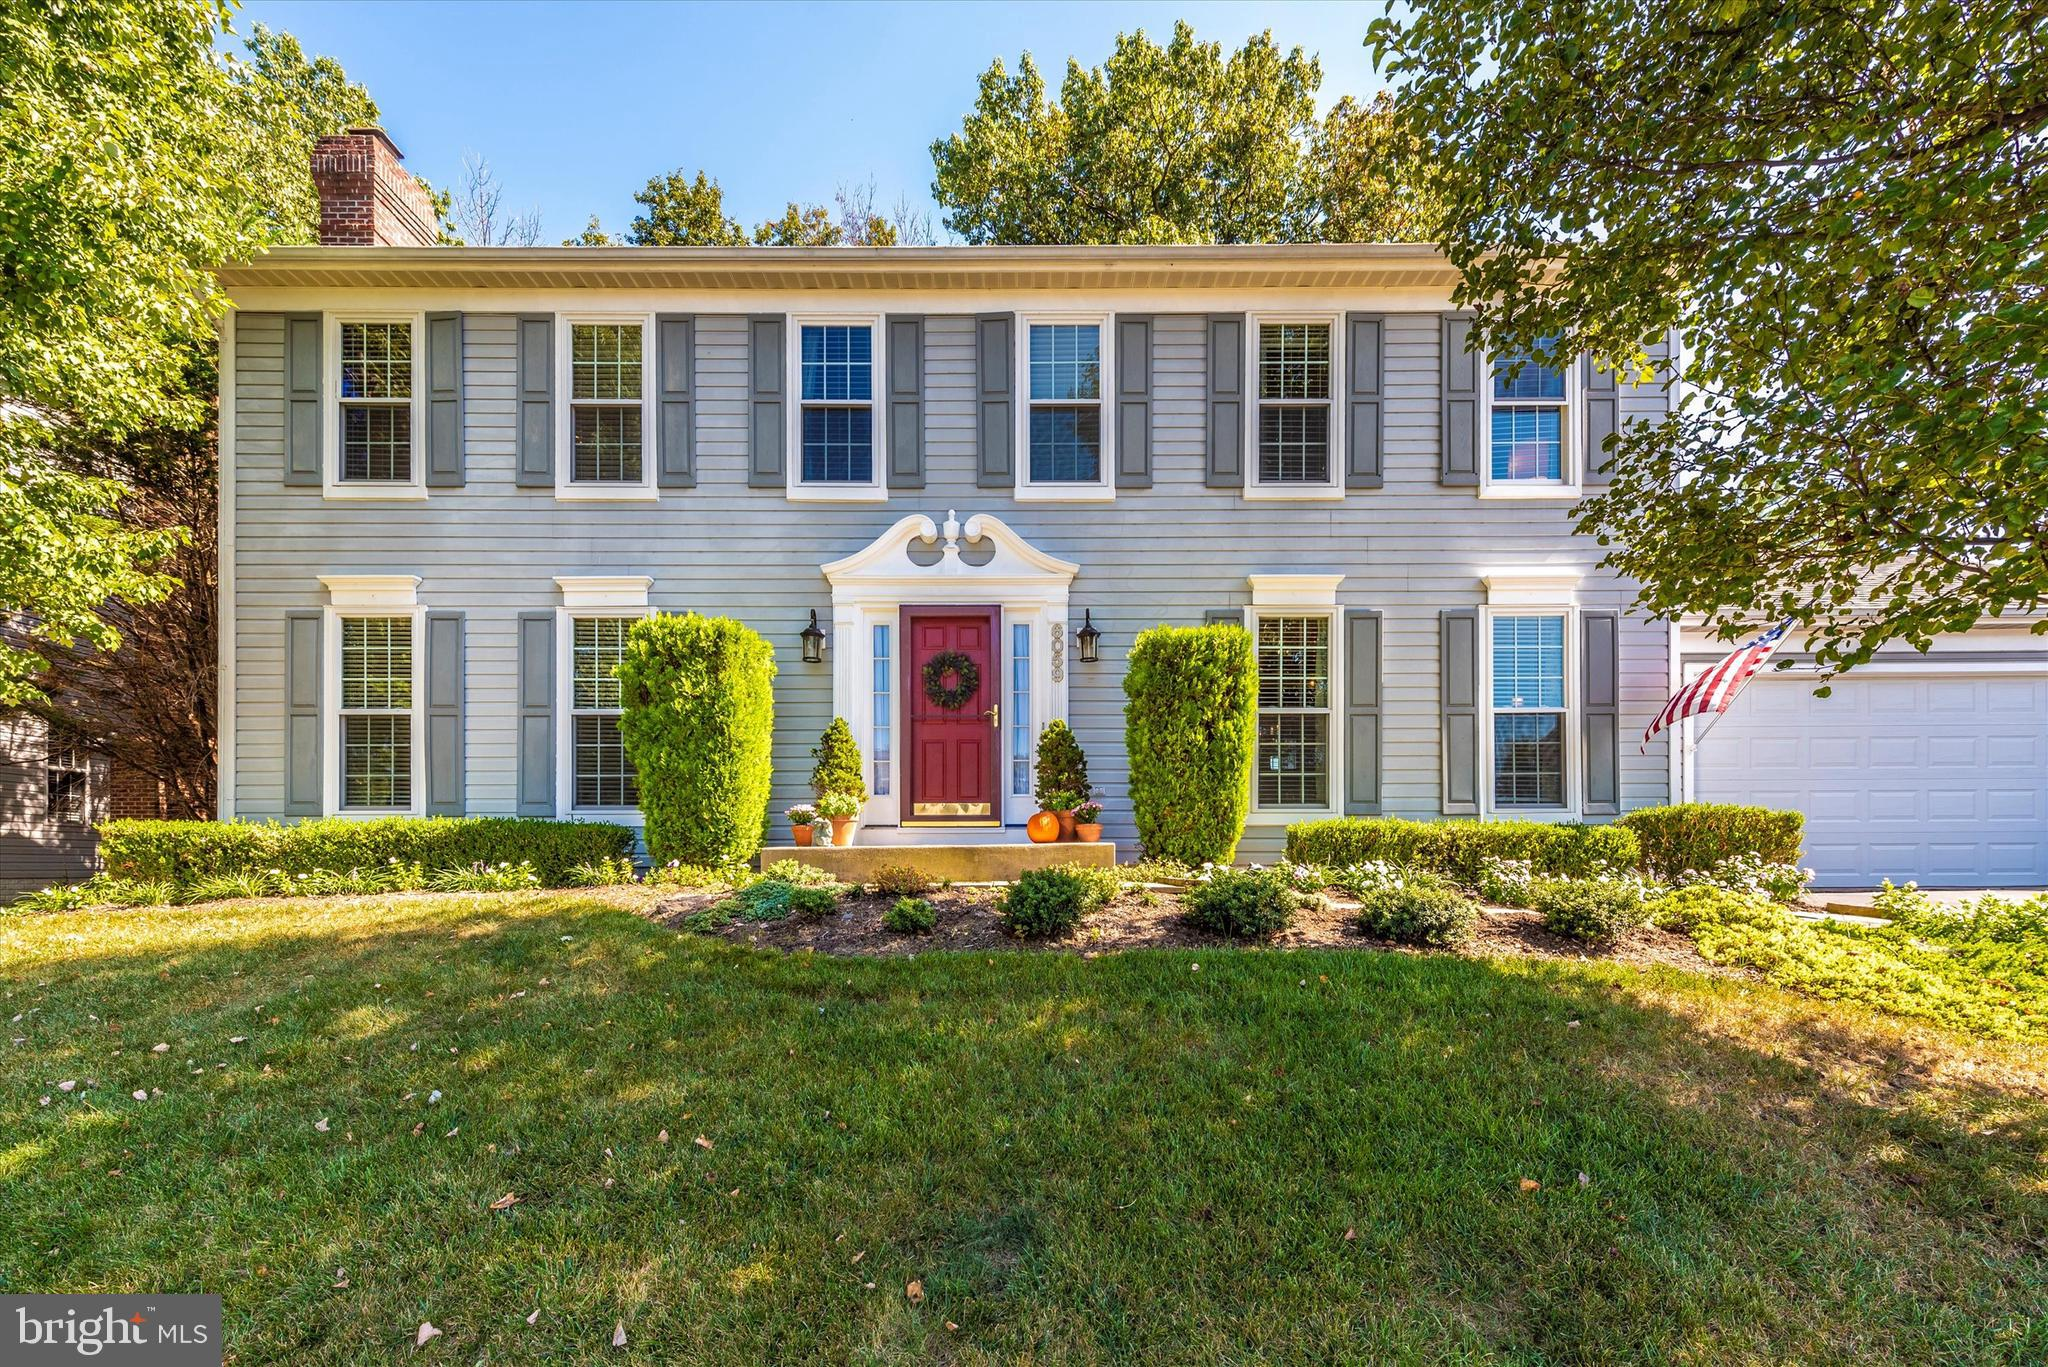 Beautiful home in immaculate condition in sought after community of Summerfield! Maintenance free li